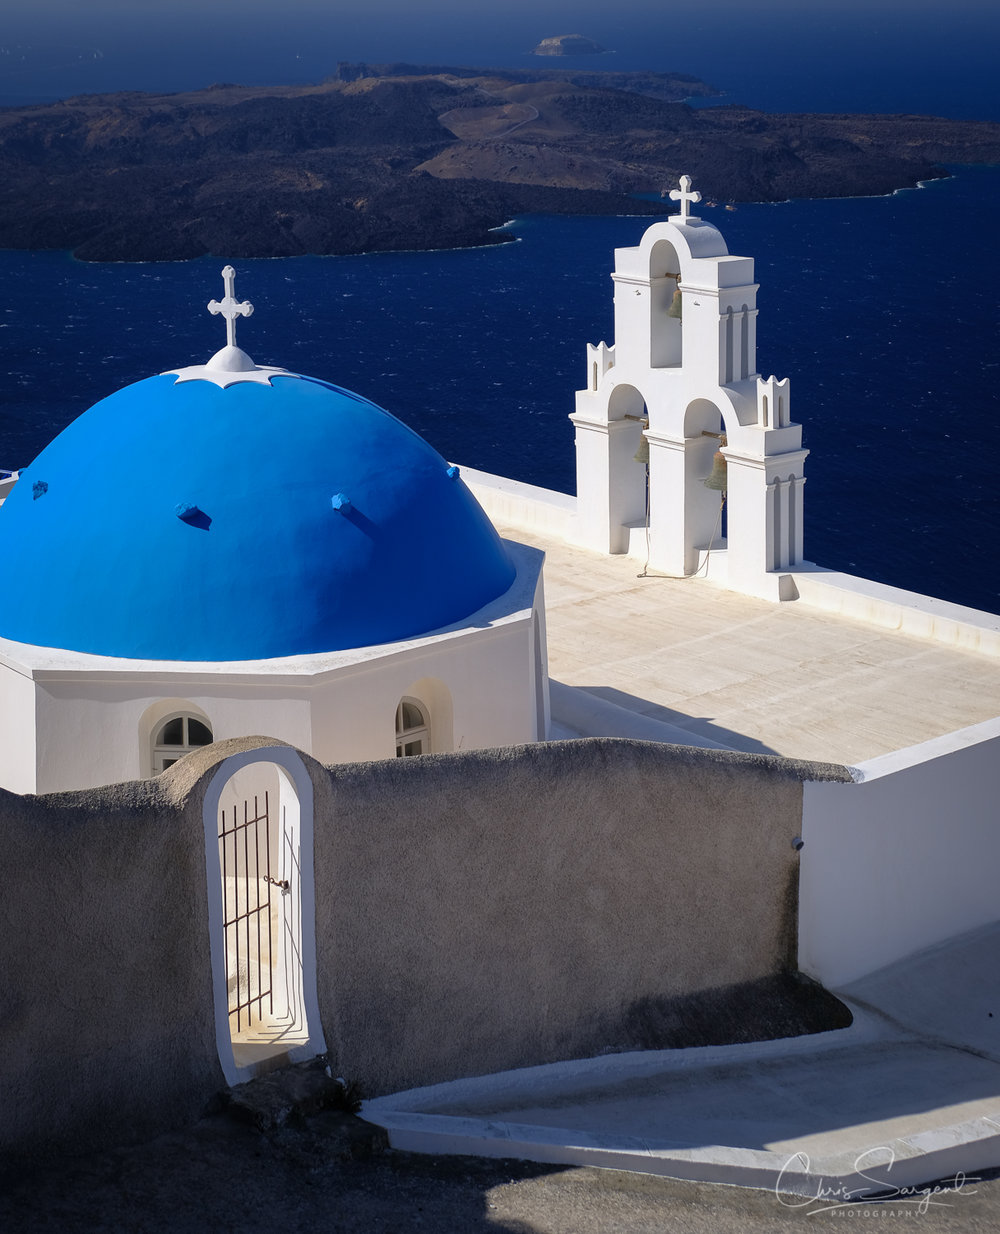 Three Bells of Fira Church, Fira, Greece  Fuji X-T3 and Fuji 18-135mm lens Fuji Velvia Film Simulation